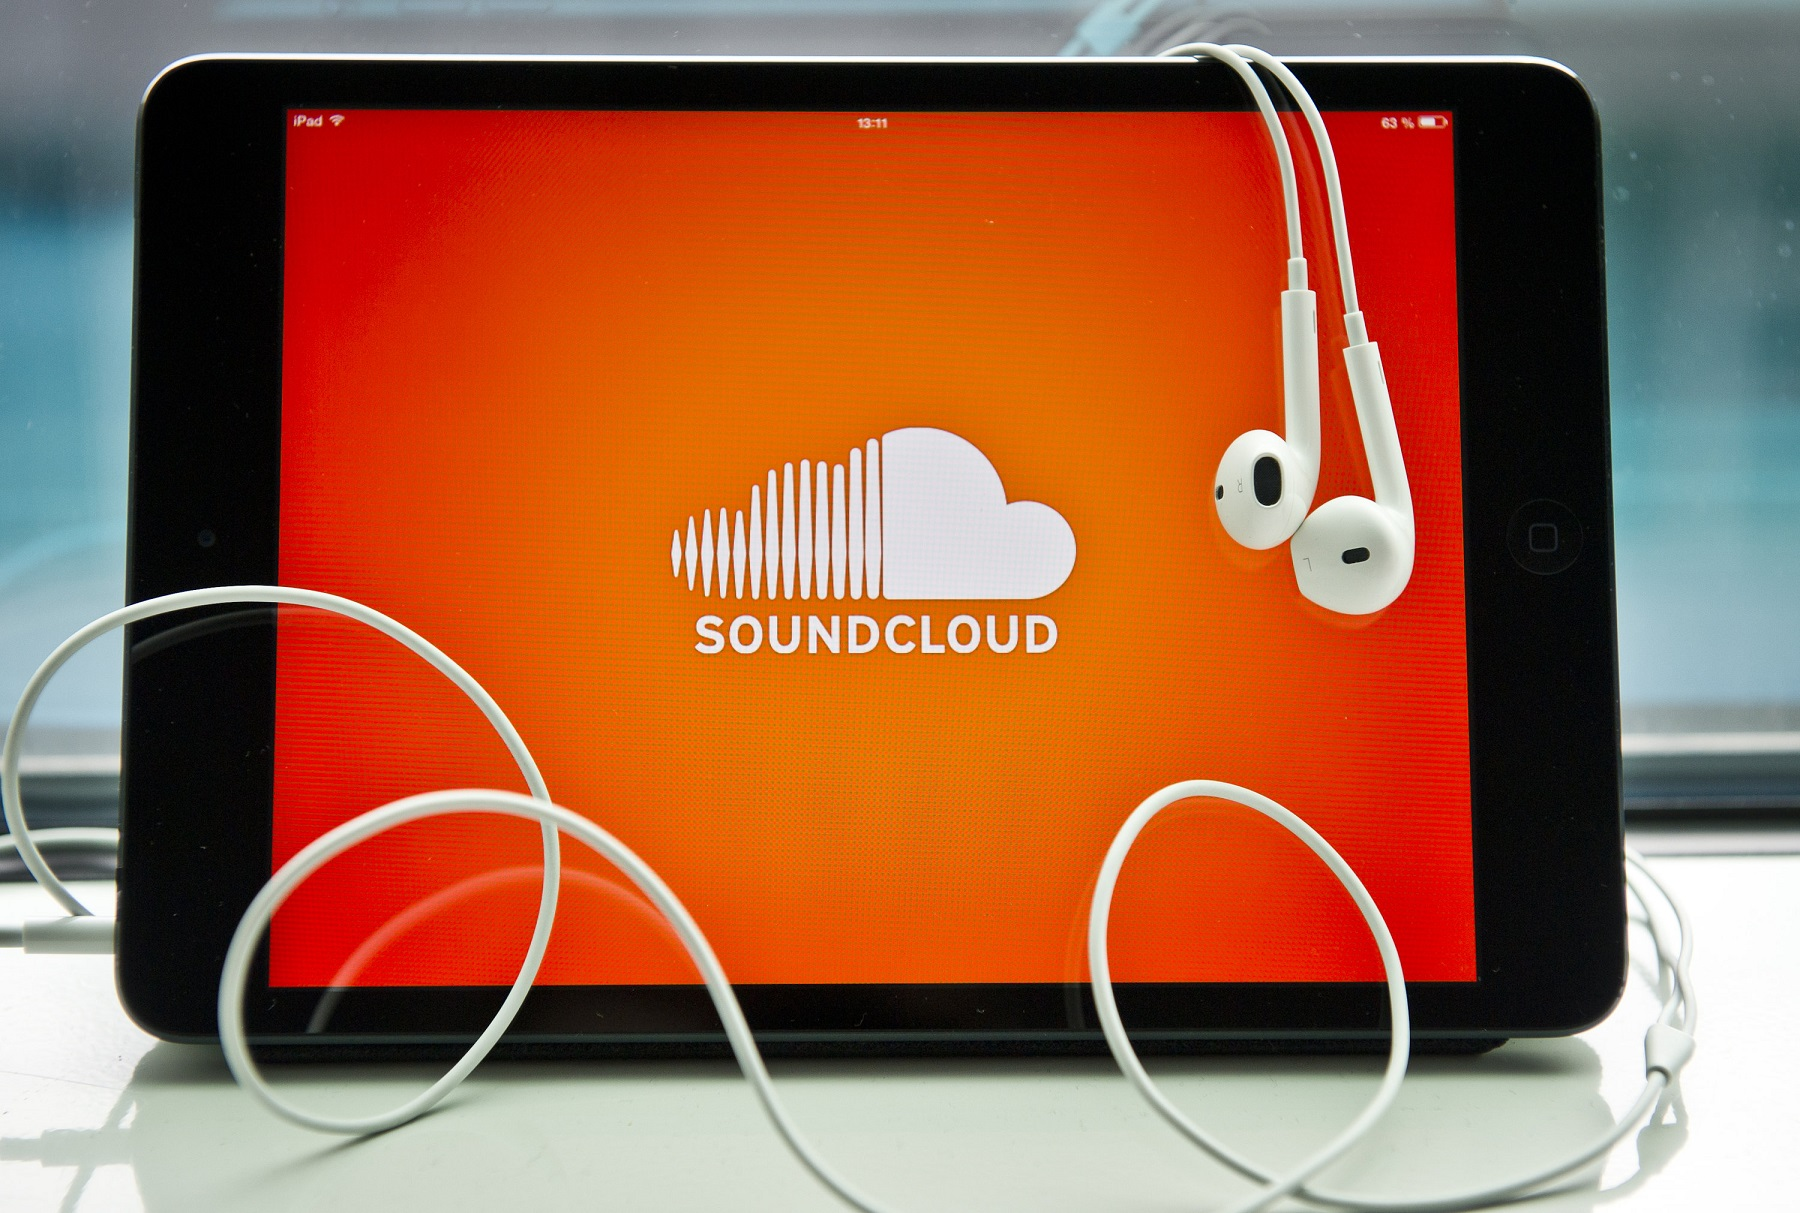 Provide 1 million soundcloud plays and 400 soundcloud likes and 400 repost 250 soundcloud followers and 50 comments